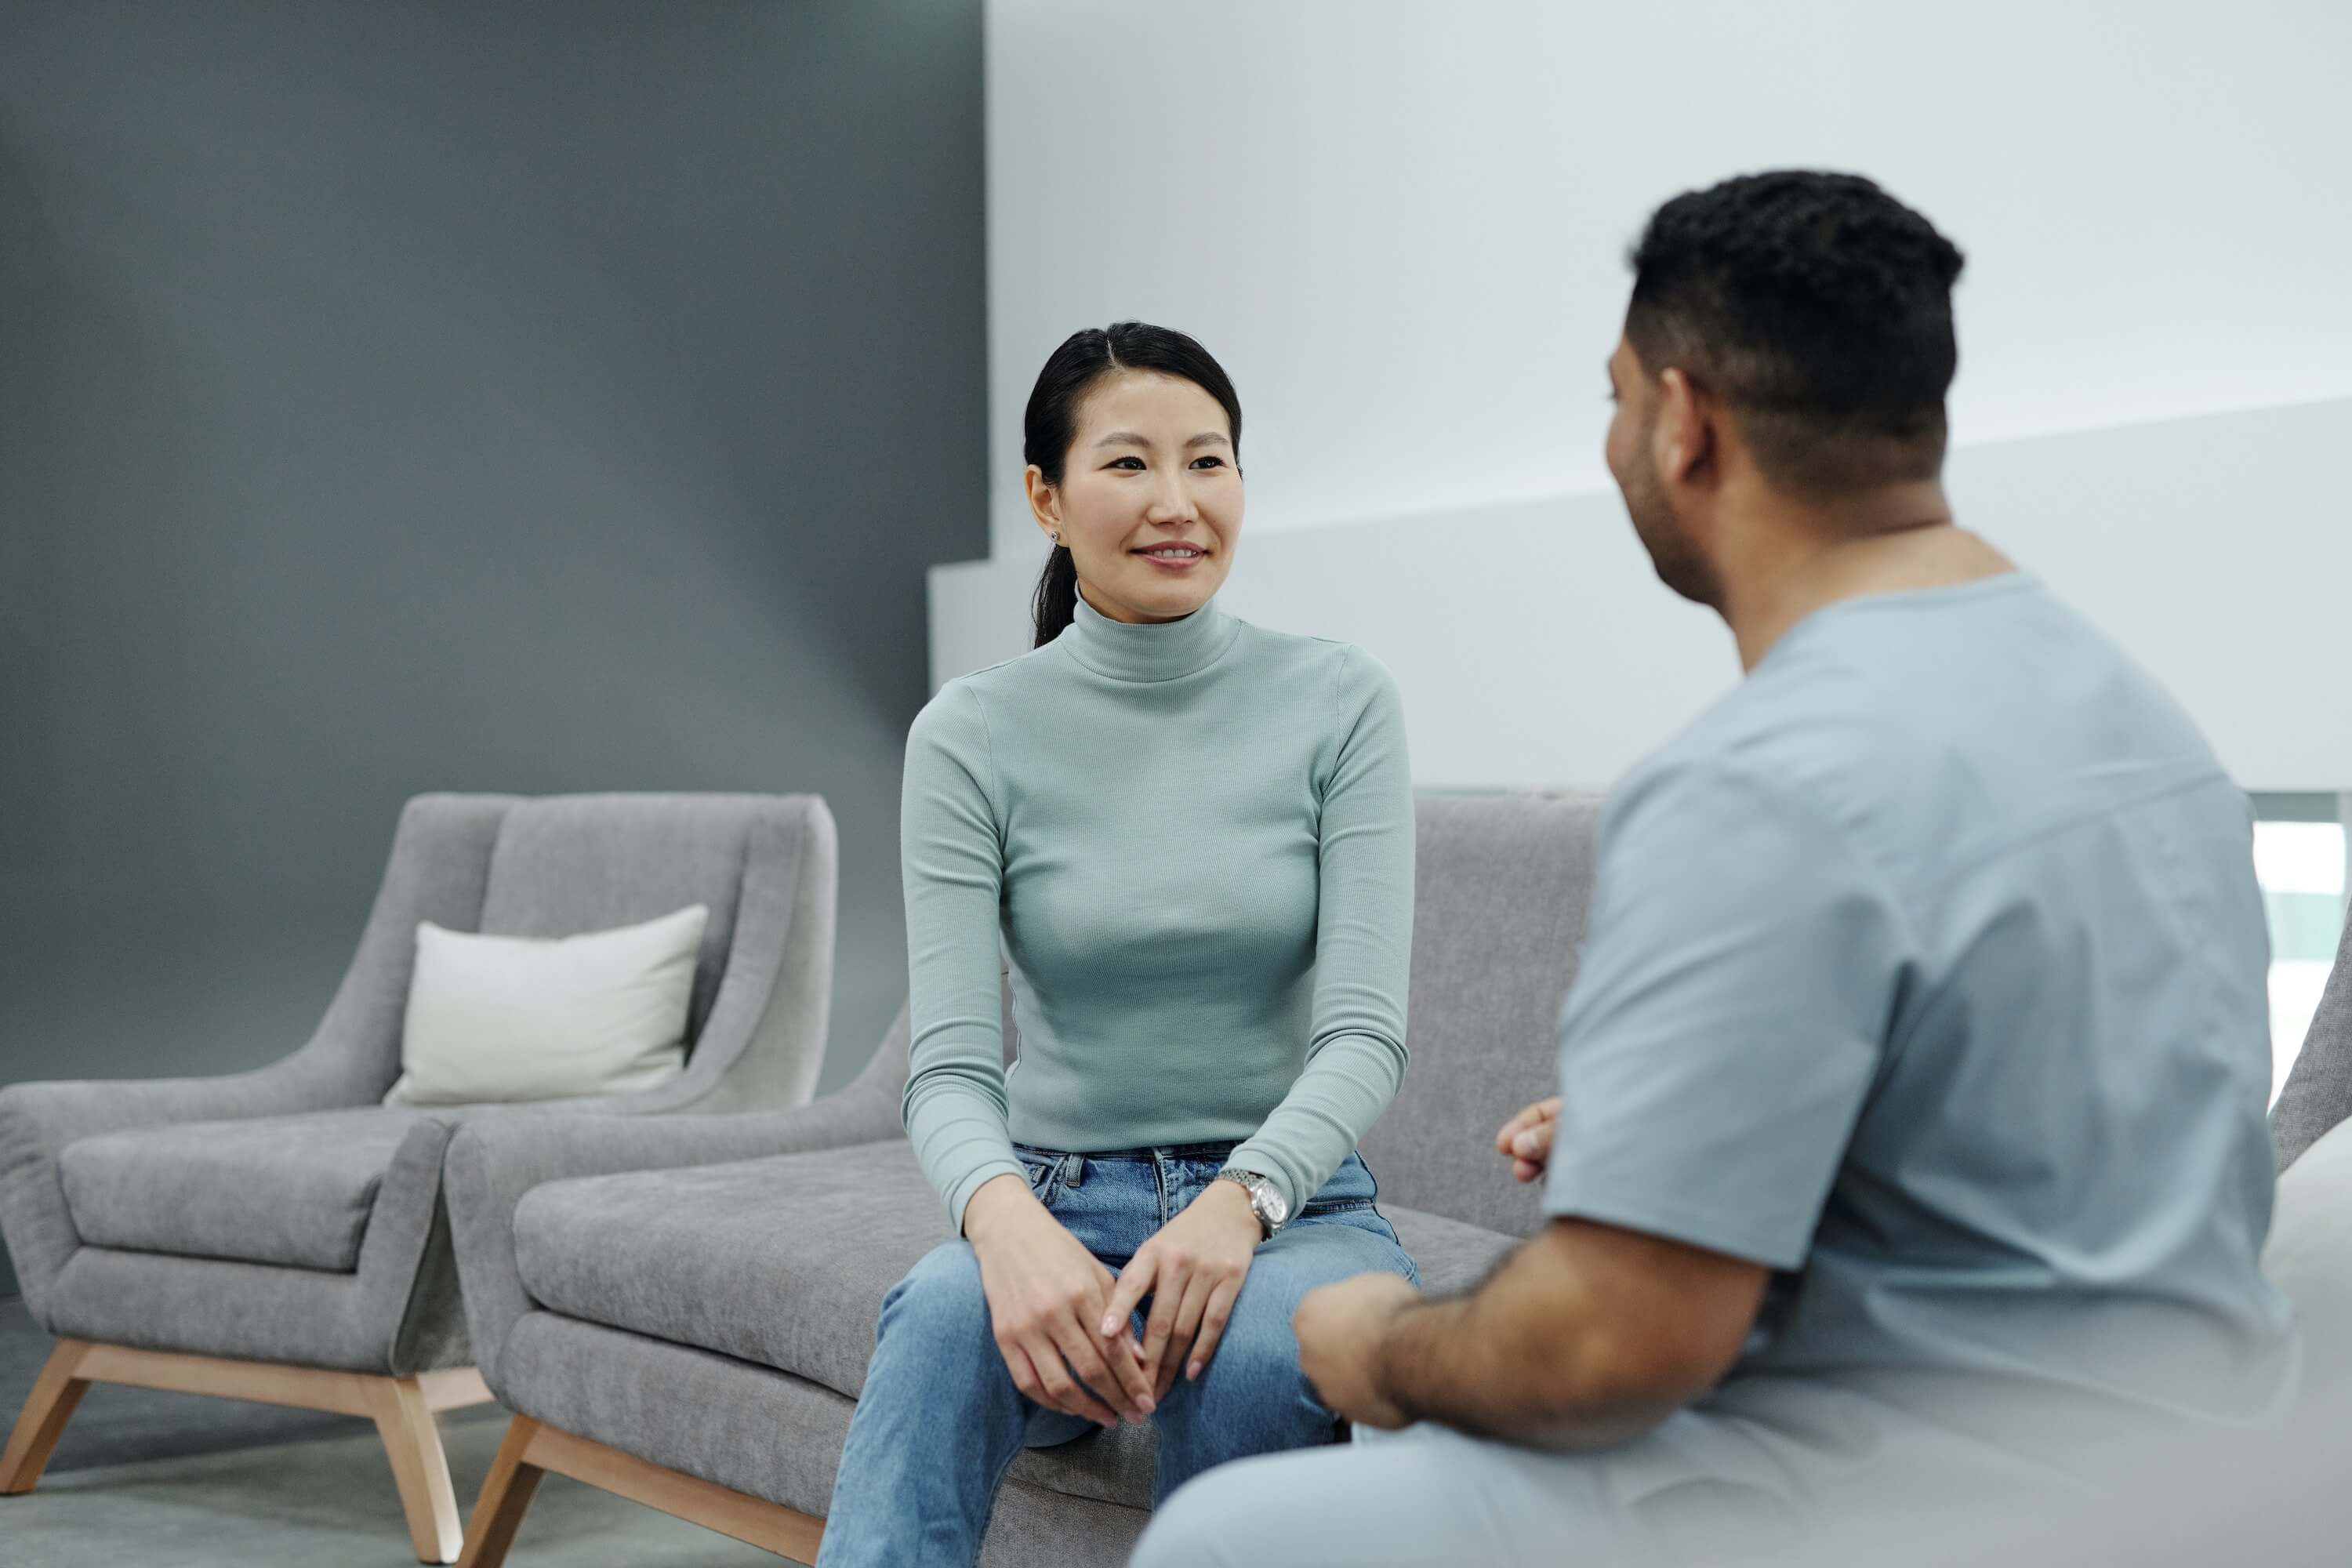 woman-and-a-man-sitting-on- a-couch-in-a-clinic